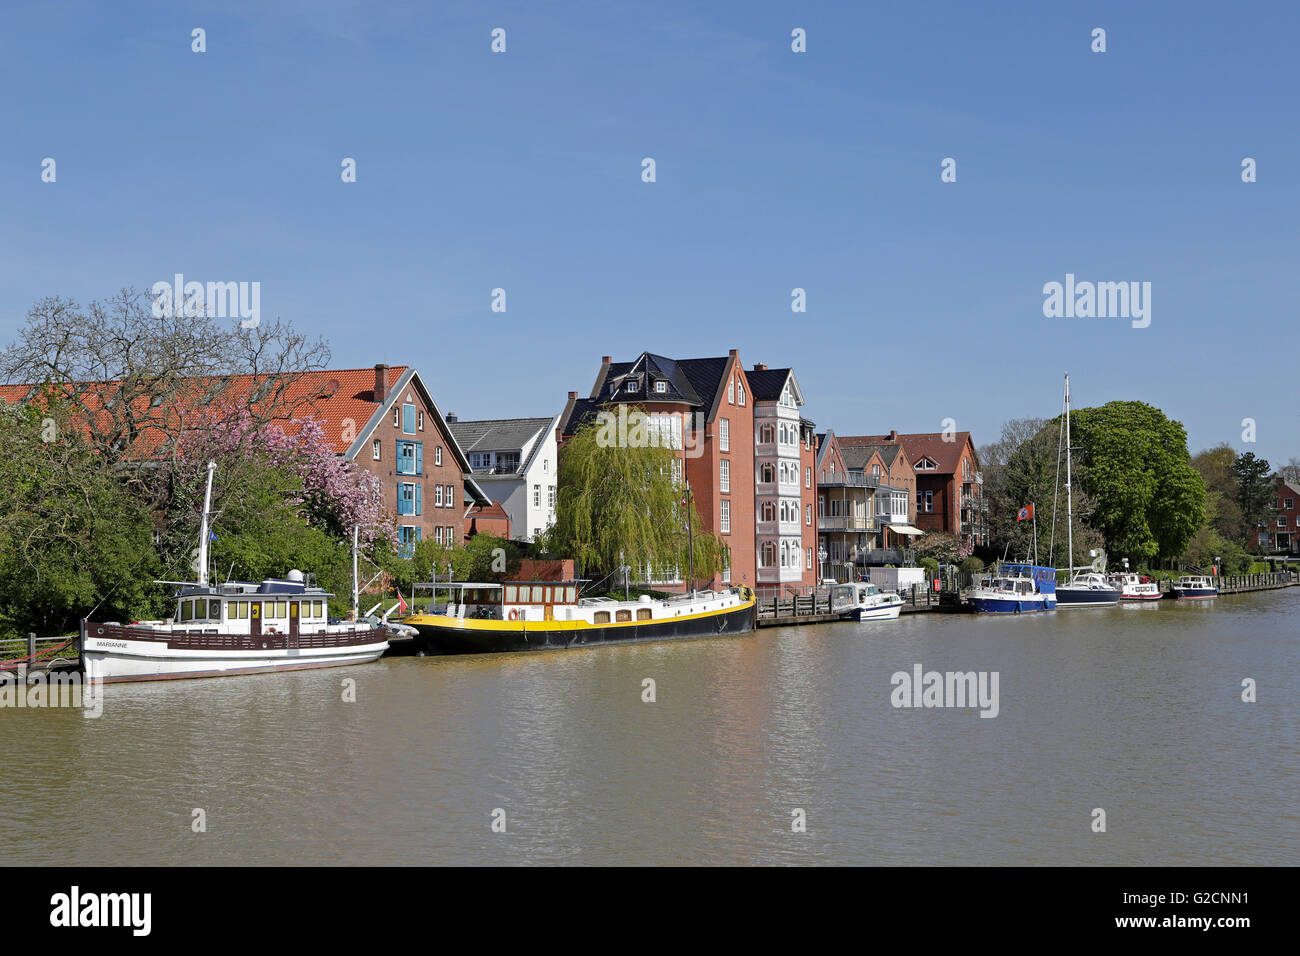 Harbour, Leer, East Friesland, Lower Saxony, Germany - Stock Image